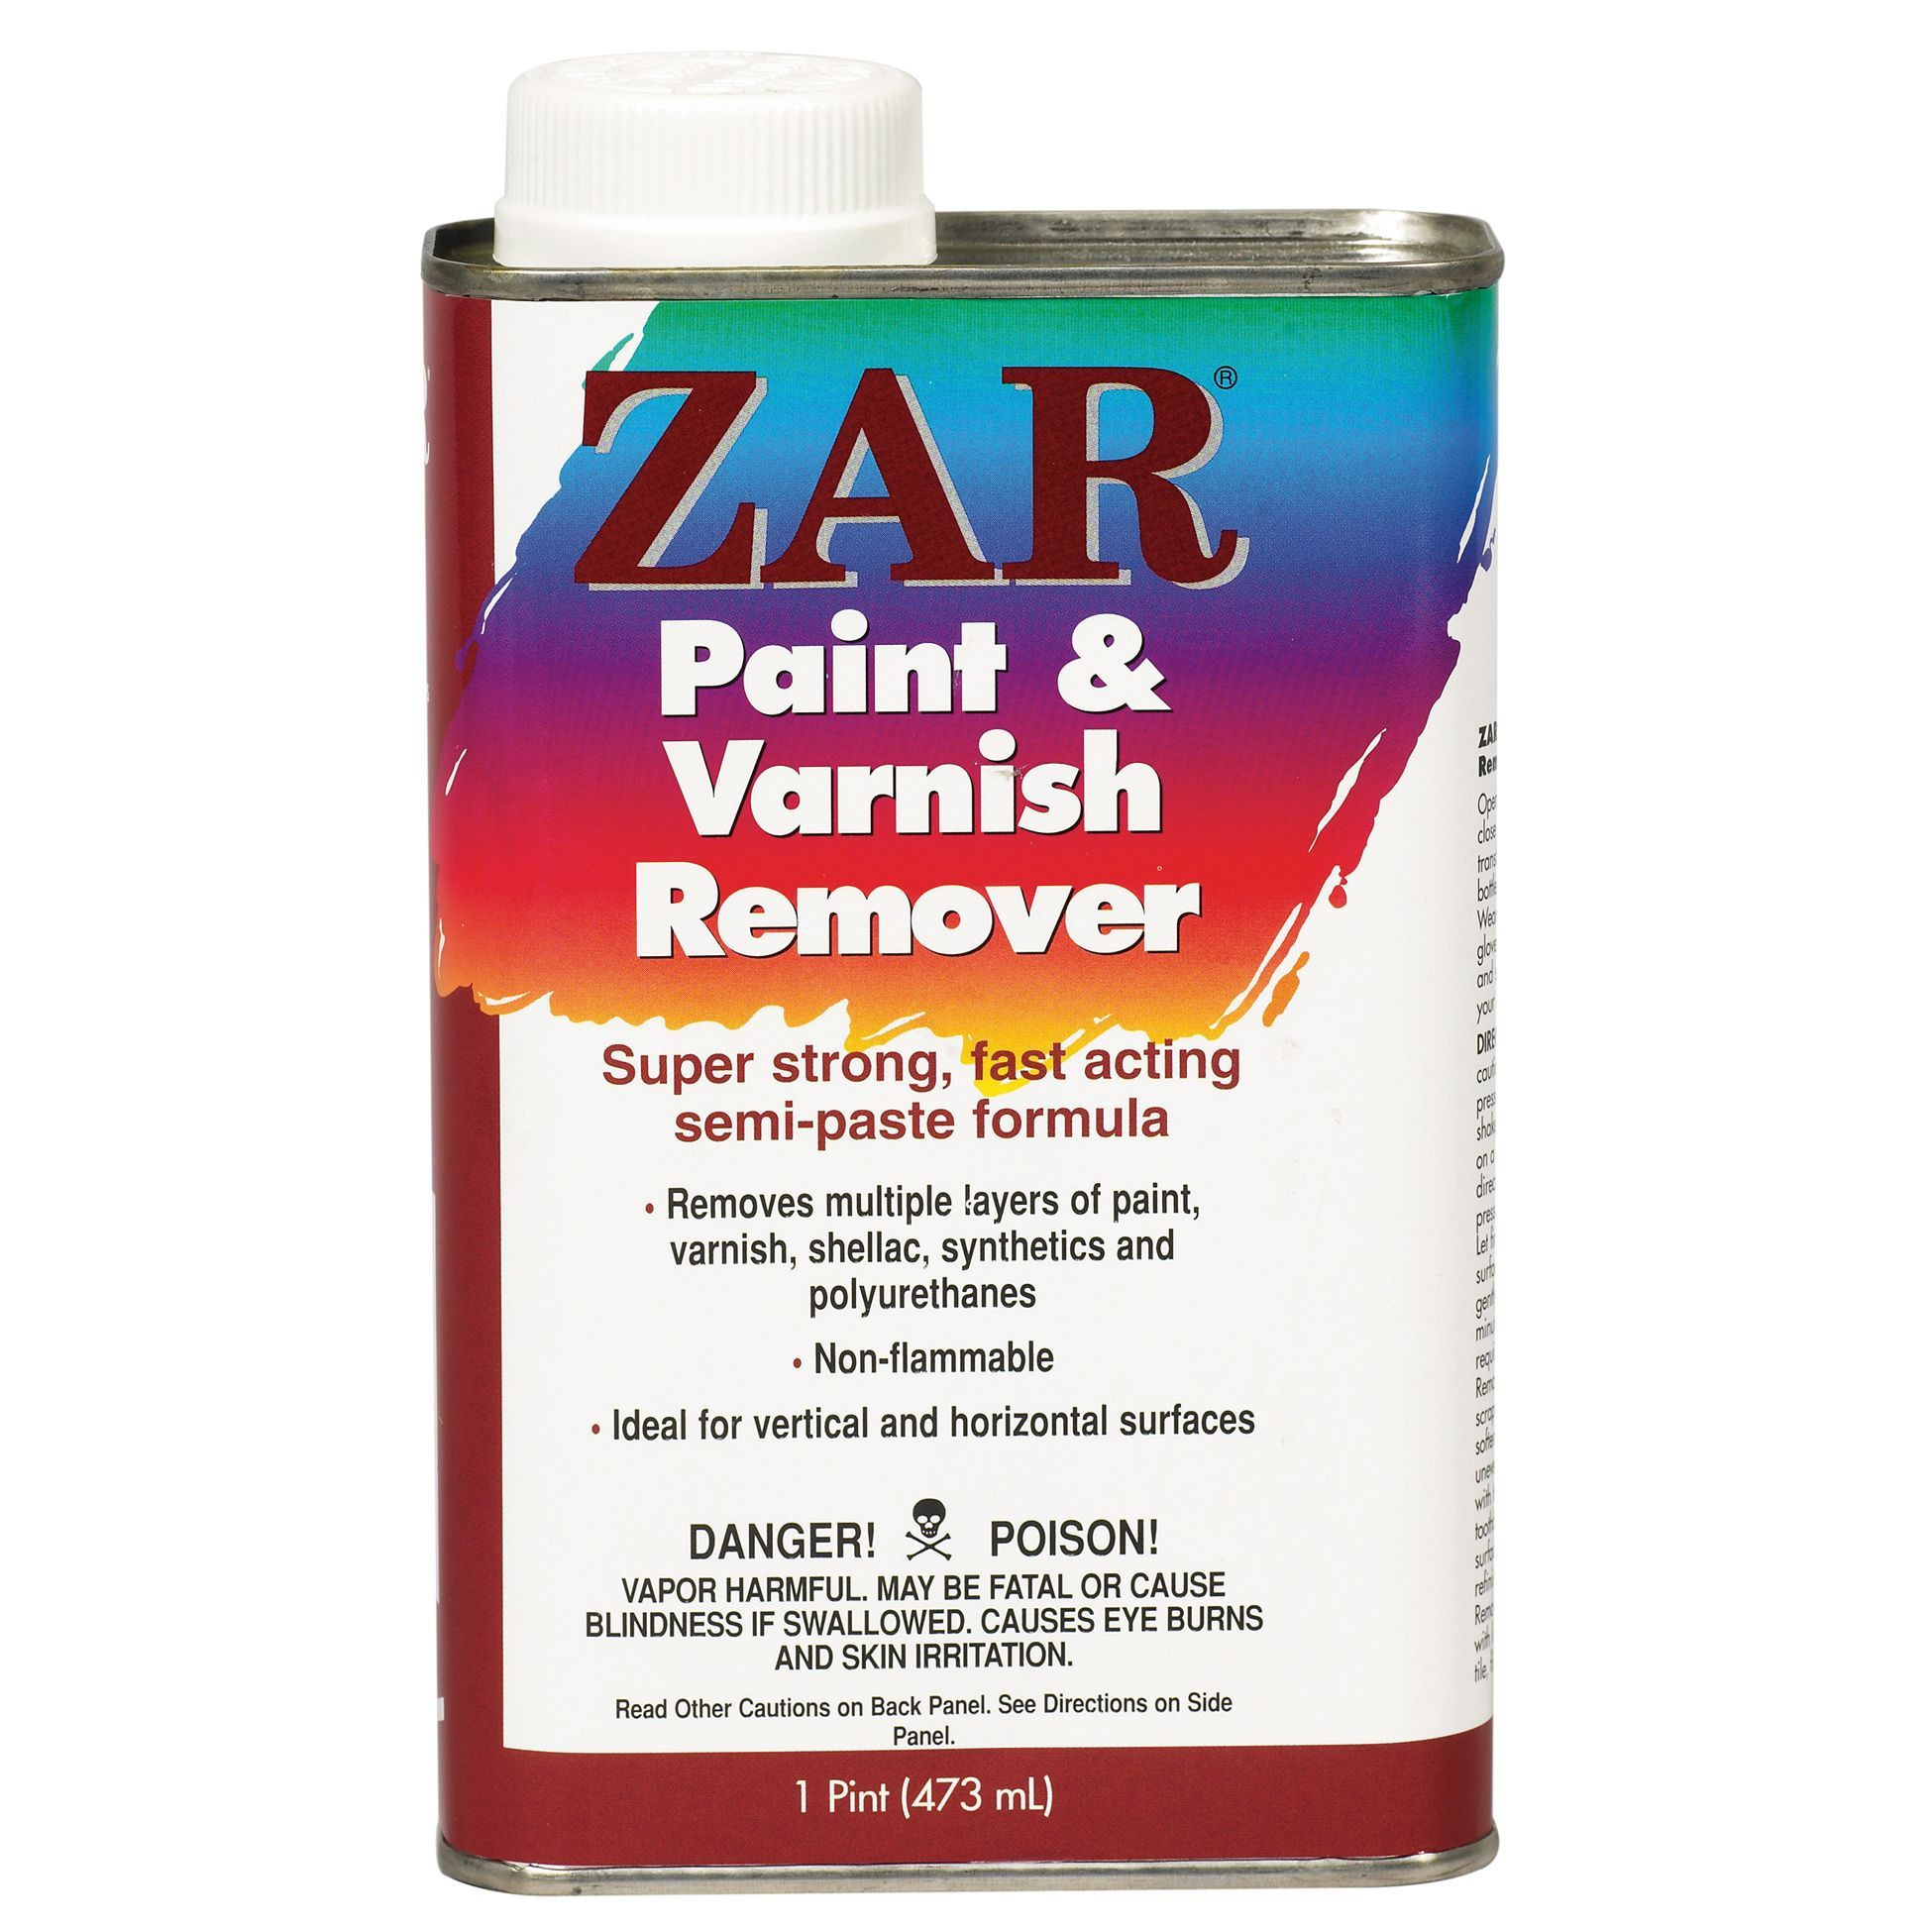 Zar 1 Pint Zar Paint & Varnish Remover Products